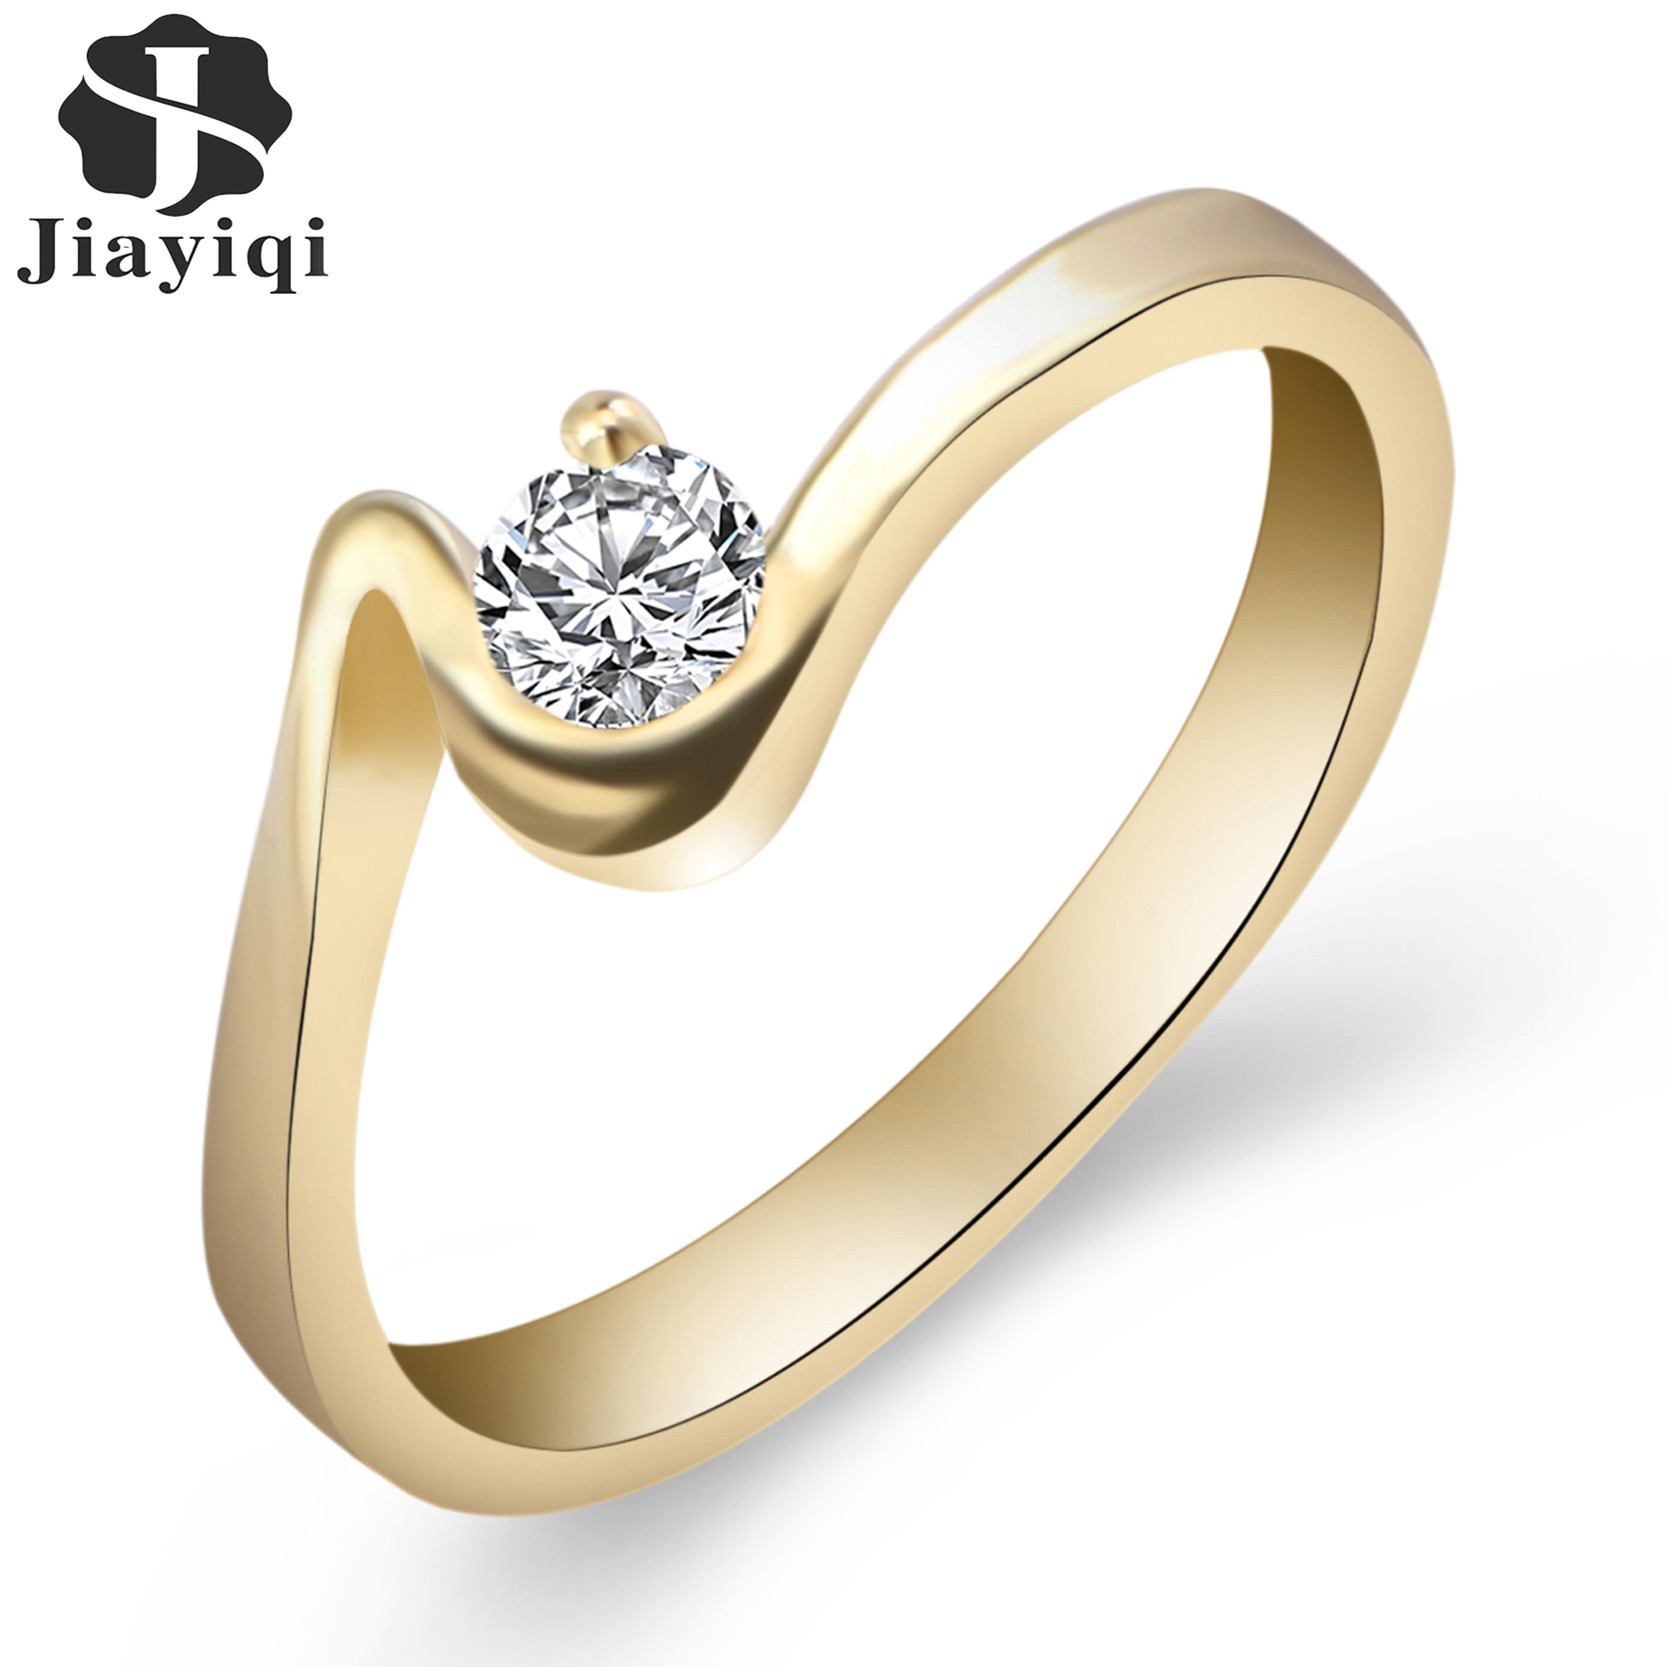 2017 New Vintage Rings Sliver Rose Gold Color Round Crystal Cubic Zirconia Engagement Ring For Women Hot Selling Jewelry Gift